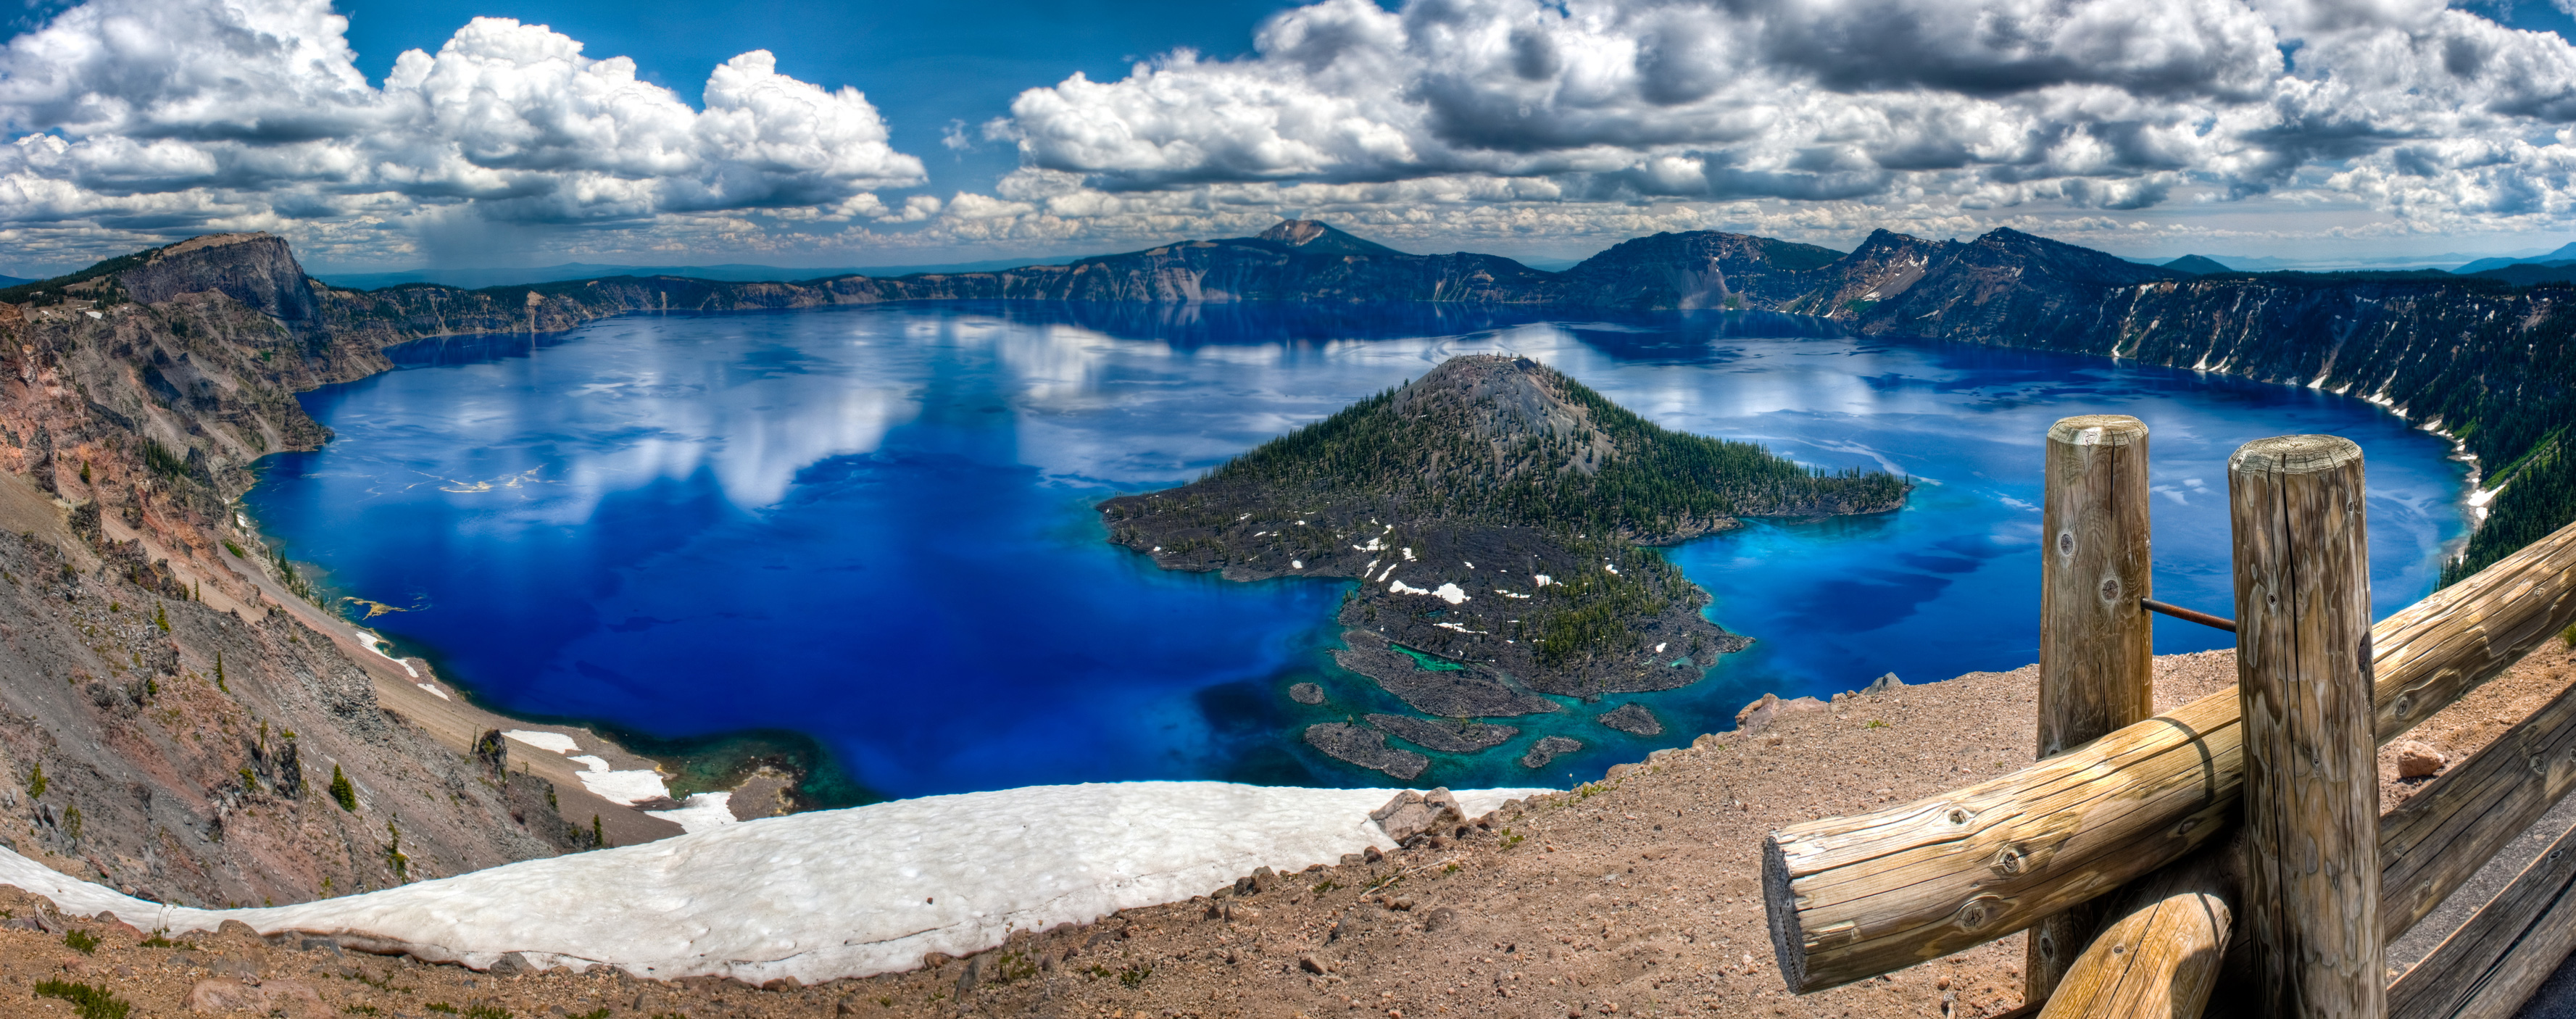 Crater Lake National Park clipart #2, Download drawings